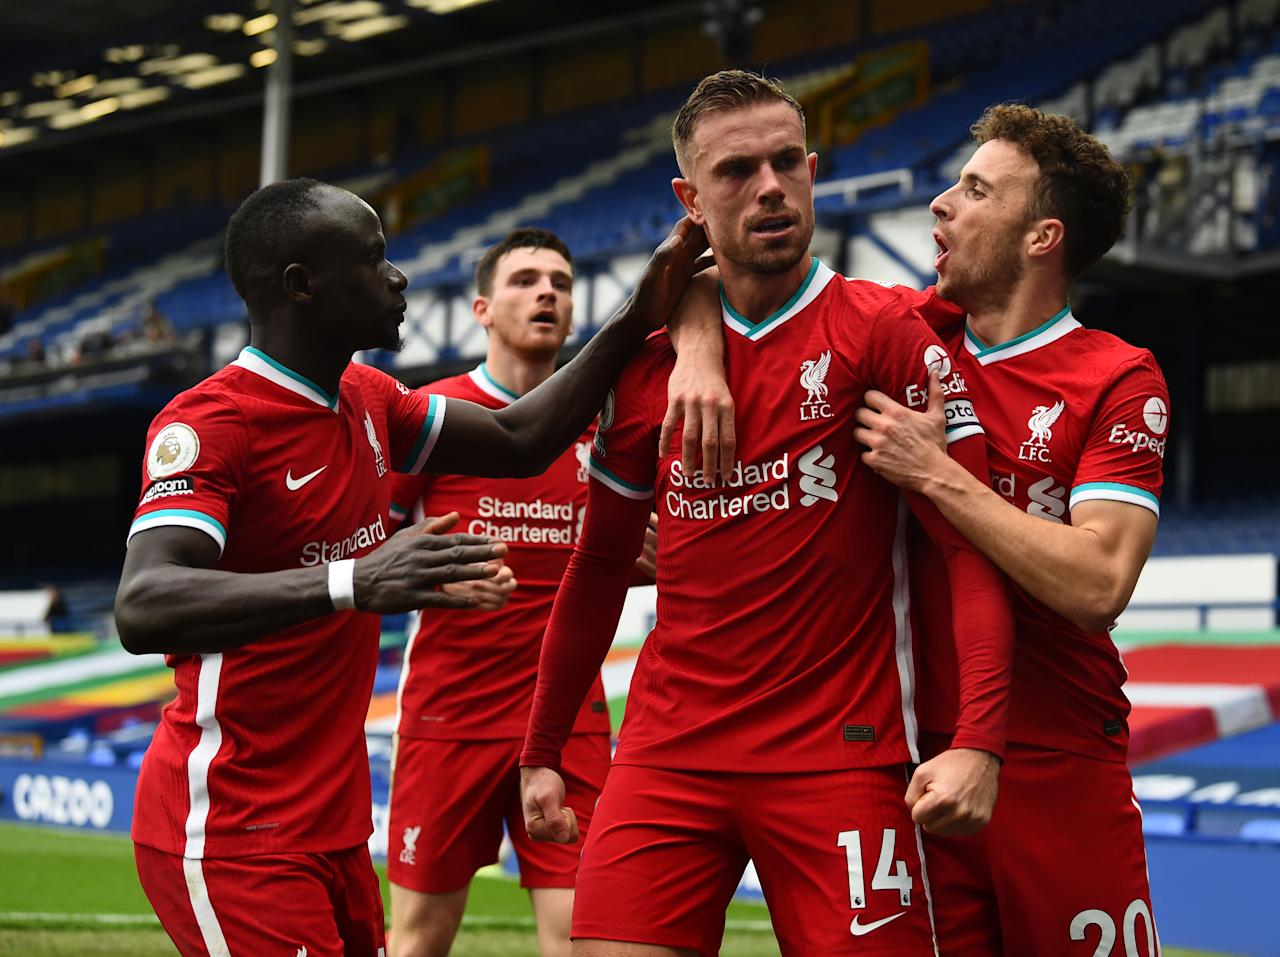 LIVERPOOL, ENGLAND - OCTOBER 17: (THE SUN OUT, THE SUN ON SUNDAY OUT ) Jordan Henderson captain of Liverpool Celebrates after scoring the third goal for Liverpool  But  then V.A.R. Cancelled his goal during the Premier League match between Everton and Liverpool at Goodison Park on October 17, 2020 in Liverpool, England. Sporting stadiums around the UK remain under strict restrictions due to the Coronavirus Pandemic as Government social distancing laws prohibit fans inside venues resulting in games being played behind closed doors. (Photo by Andrew Powell/Liverpool FC via Getty Images)